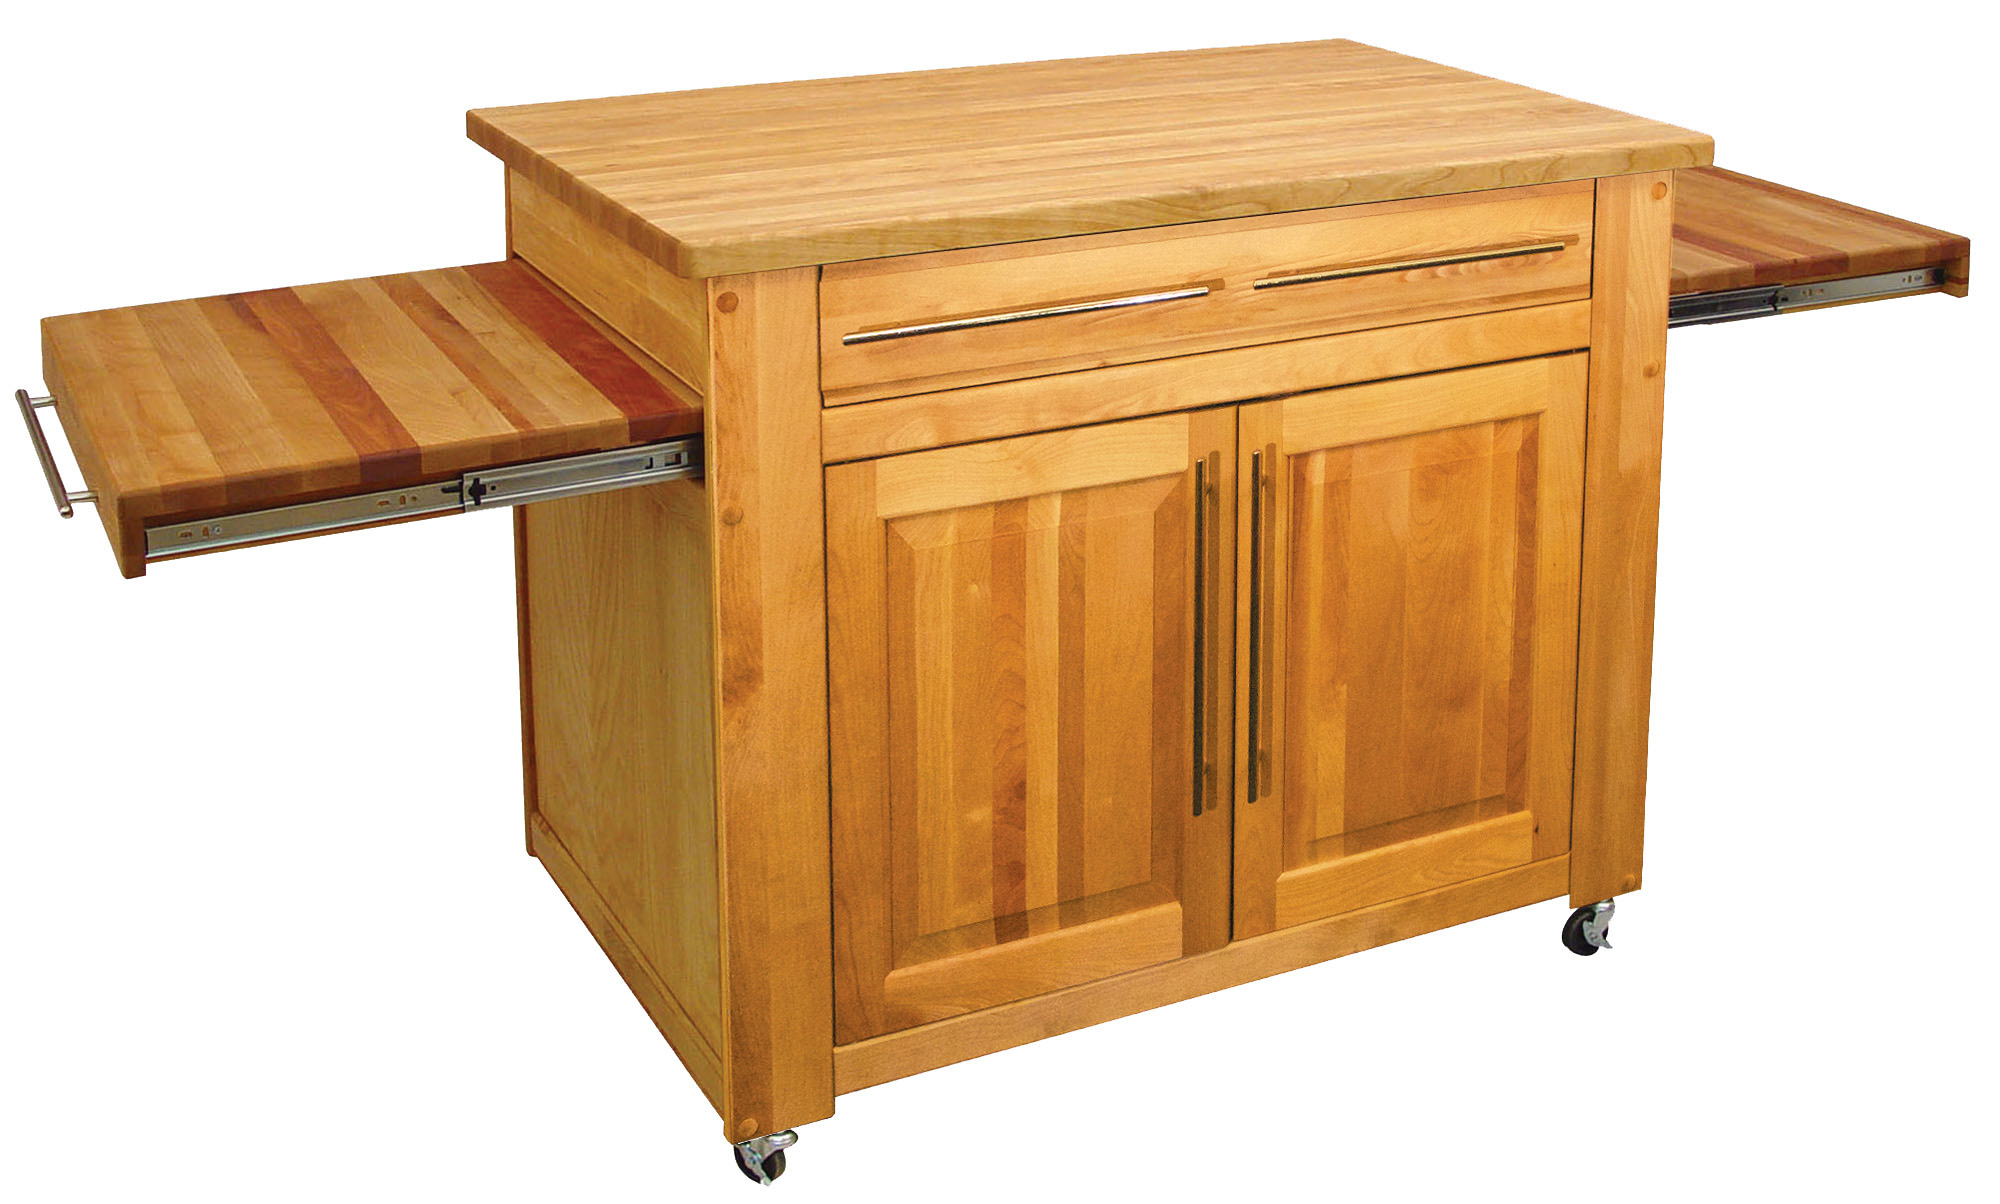 buy a large kitchen island kitchen islands online catskill s empire work center butcher block island pull out leaves